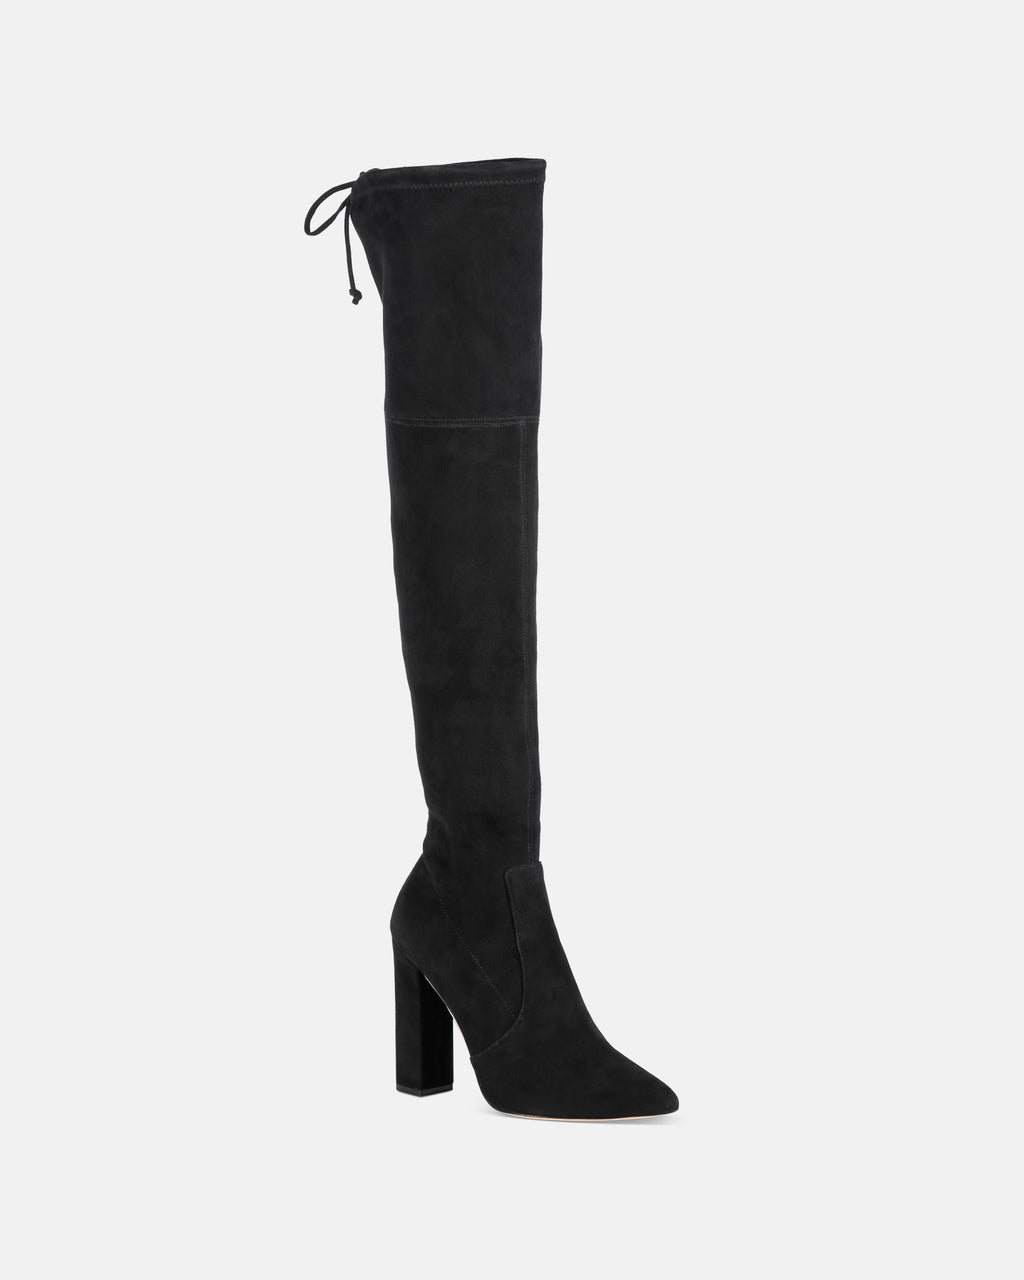 ROZLYN2 - ROZILYN BLACK SUEDE OVER THE KNEE BOOT - shoes - shoes - Straight off our Fall 2018 runway, this thigh high boot is both sexy and easy to wear. With a block heel and an pointed toe, these boots are made with a black suede and side drawstring closure.